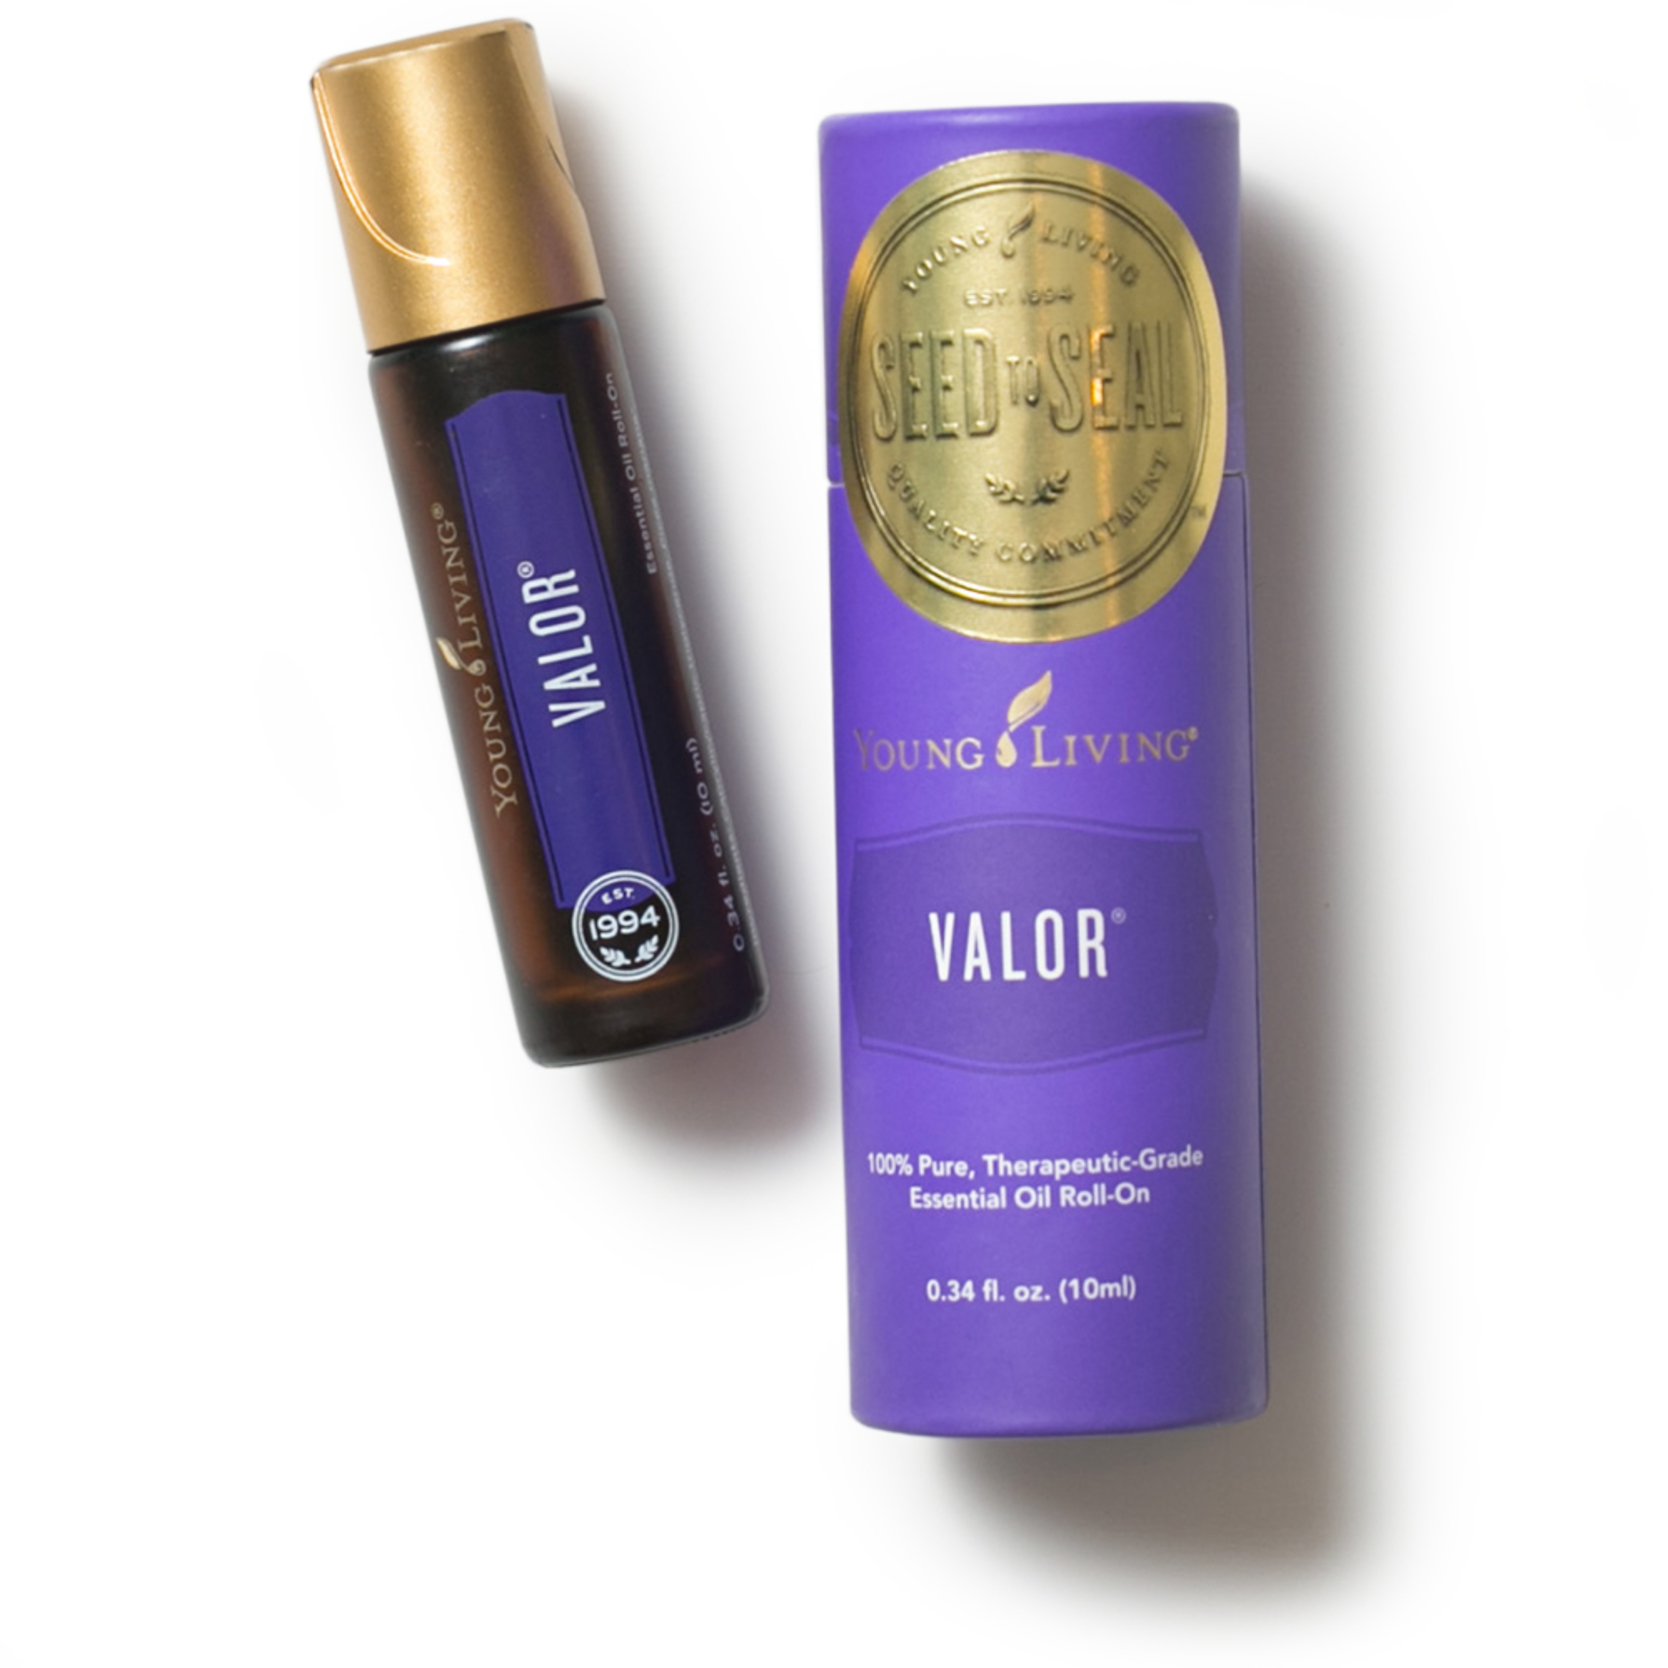 Valor Roll-On